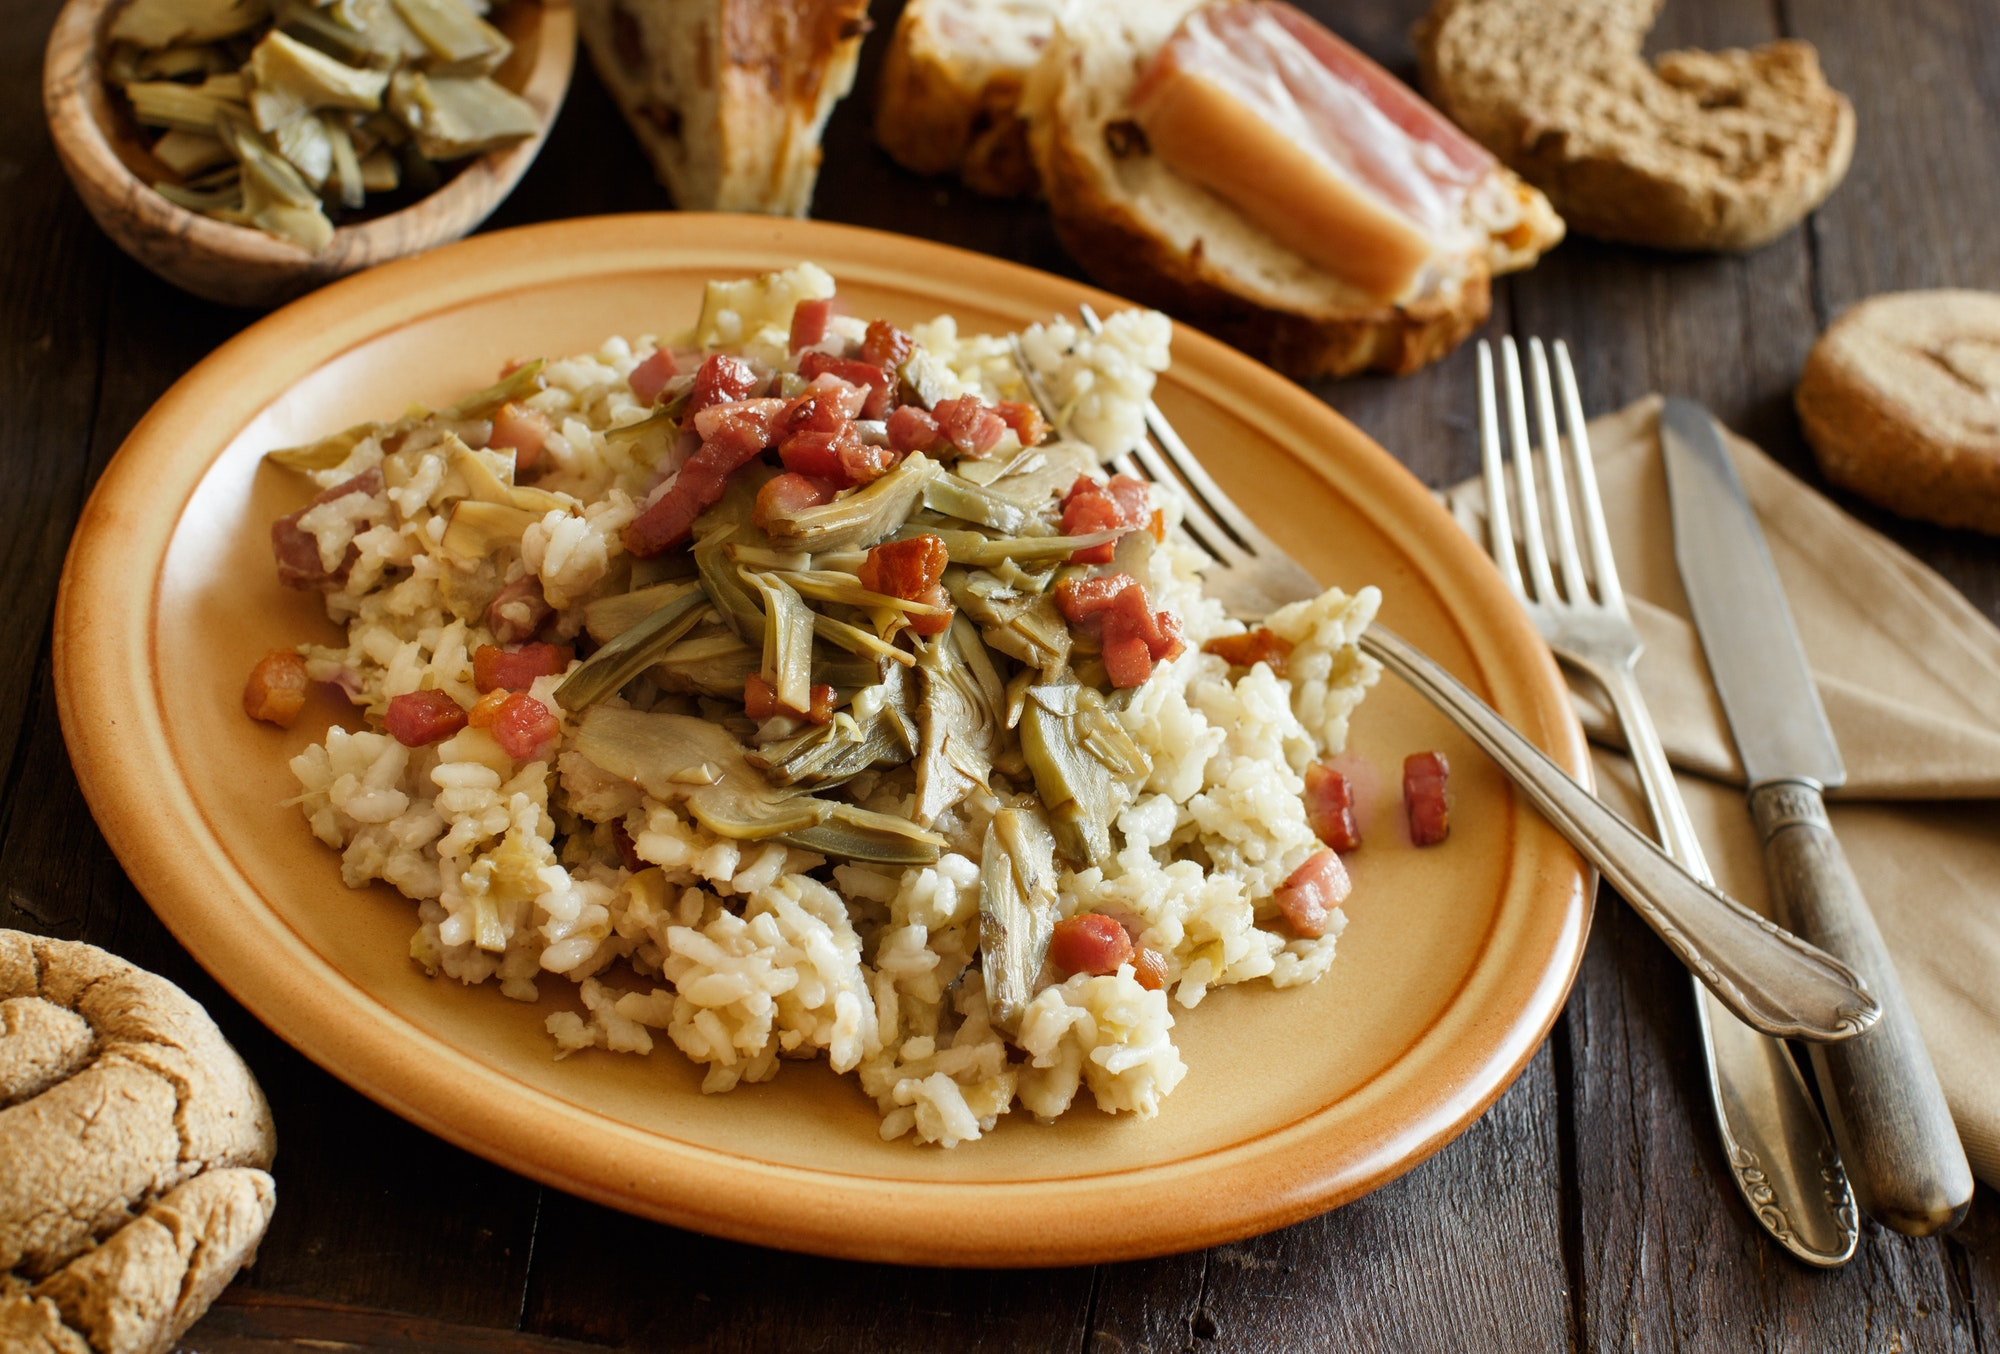 Risotto with artichokes and bacon